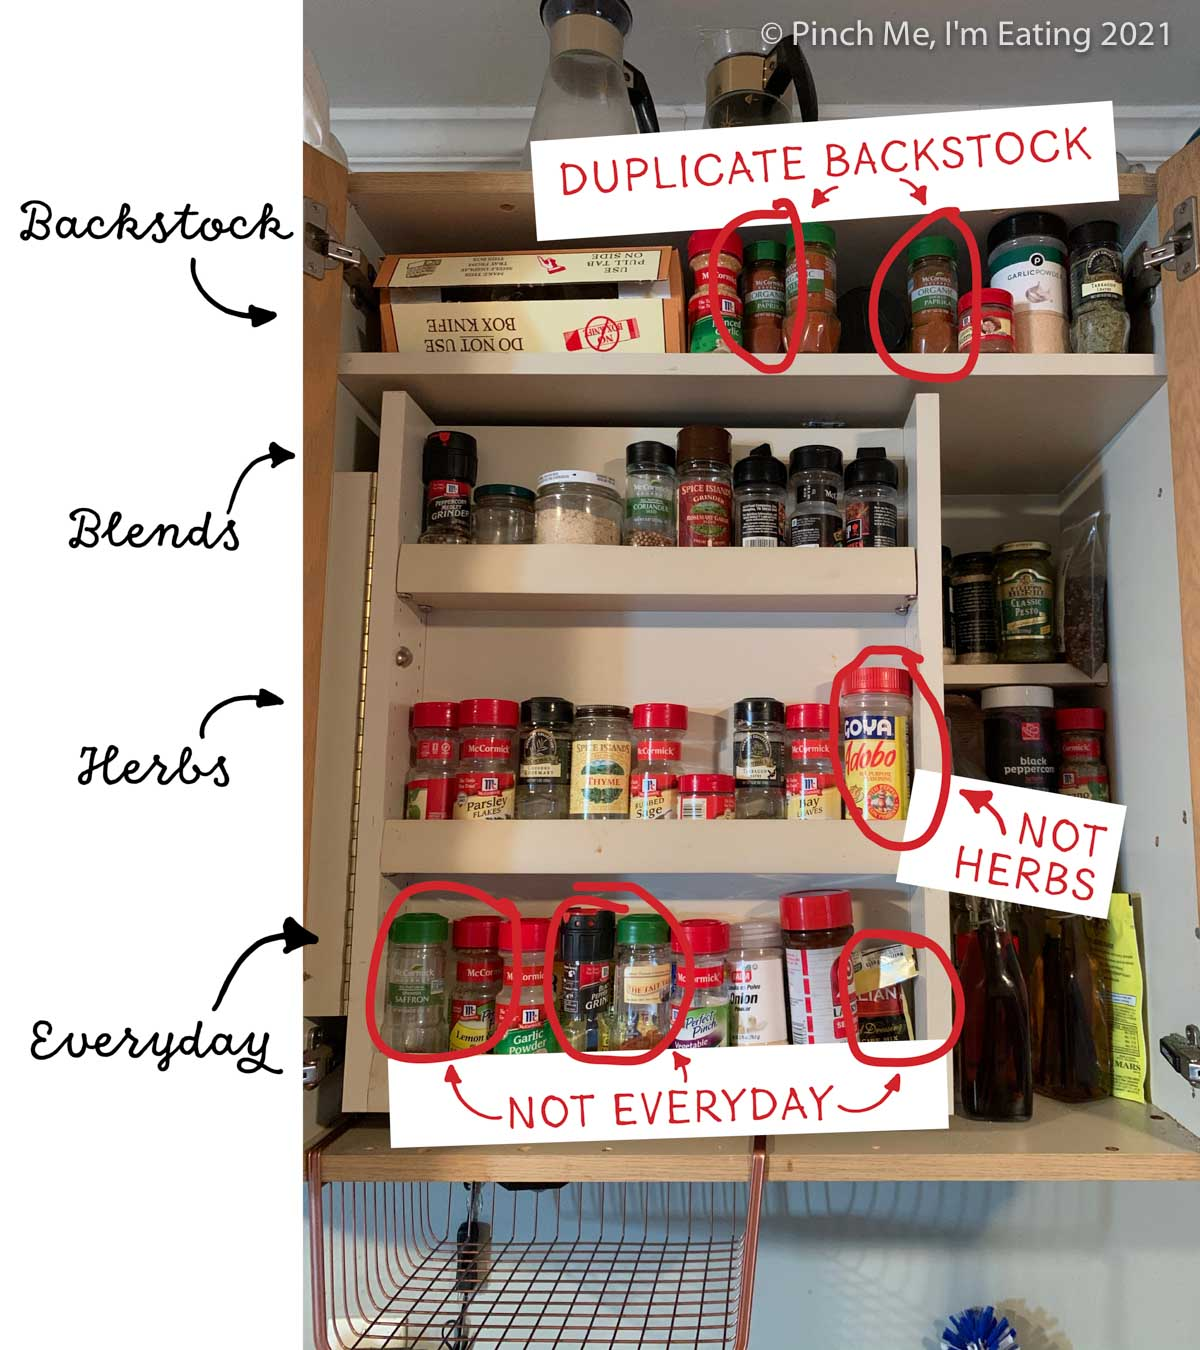 Cabinet with swinging spice shelf insert - labeled with flaws in organization